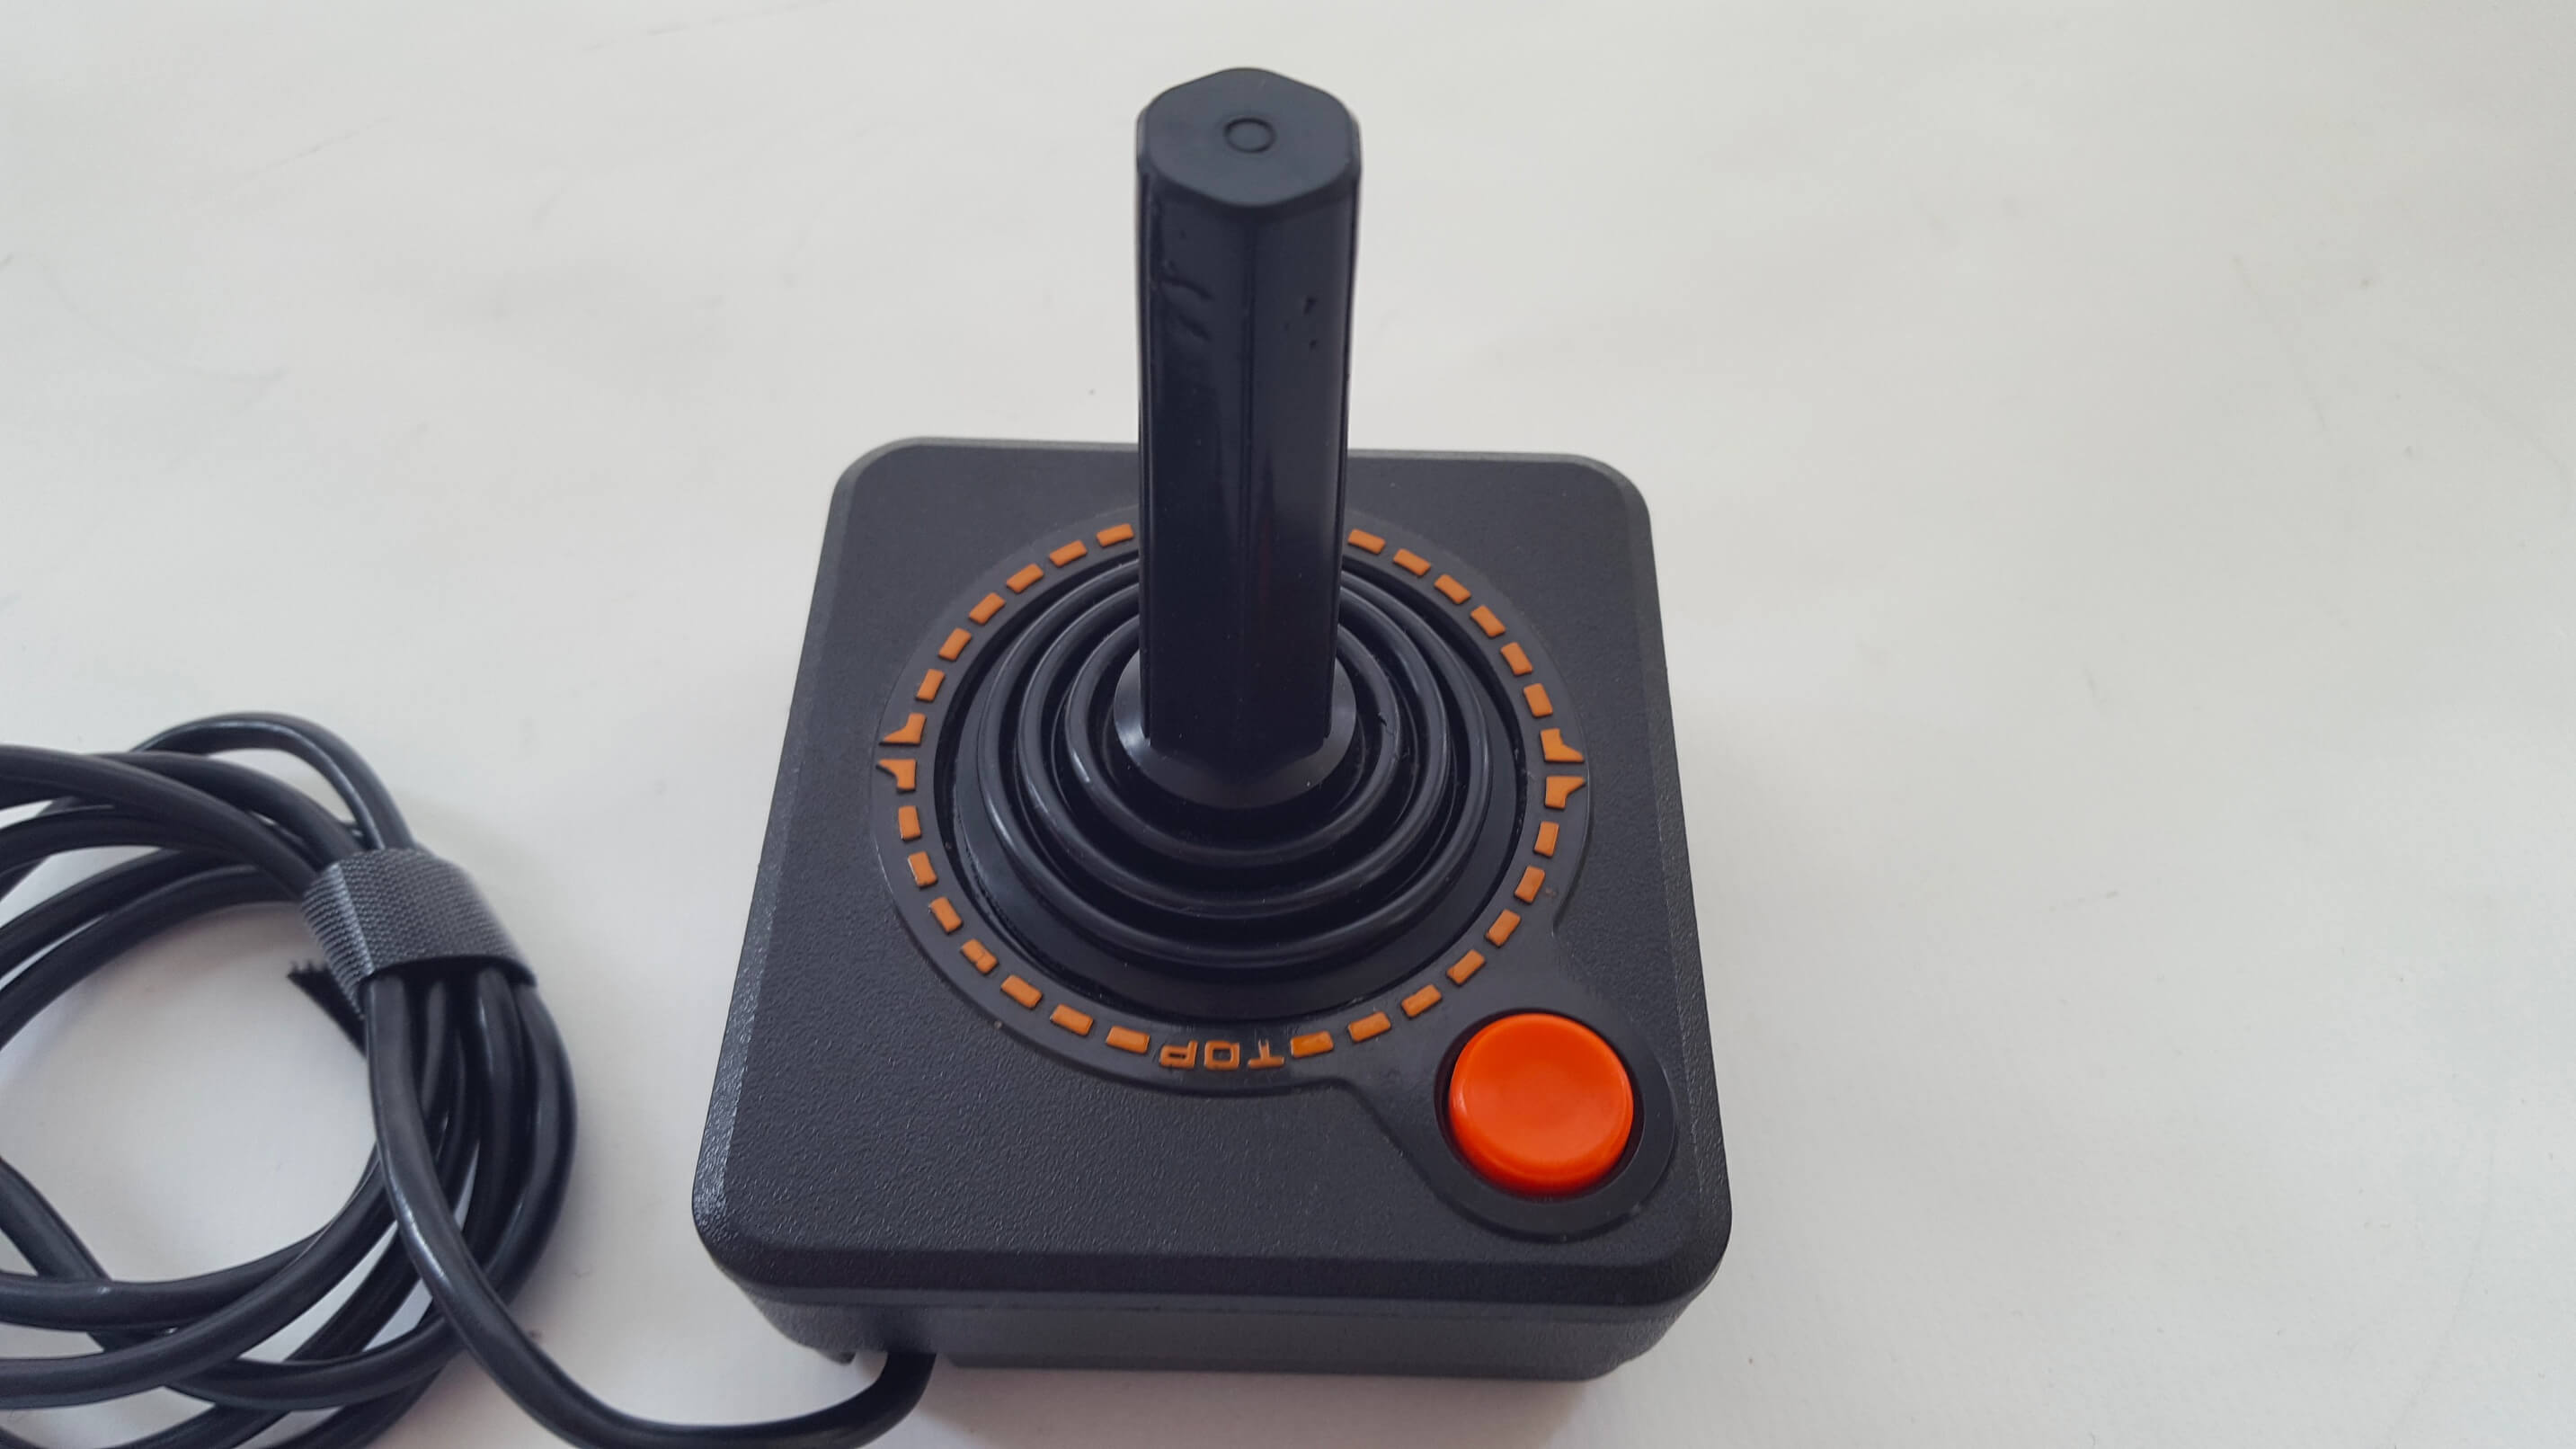 The Most Memorable Game Controllers from the Last 40 Years